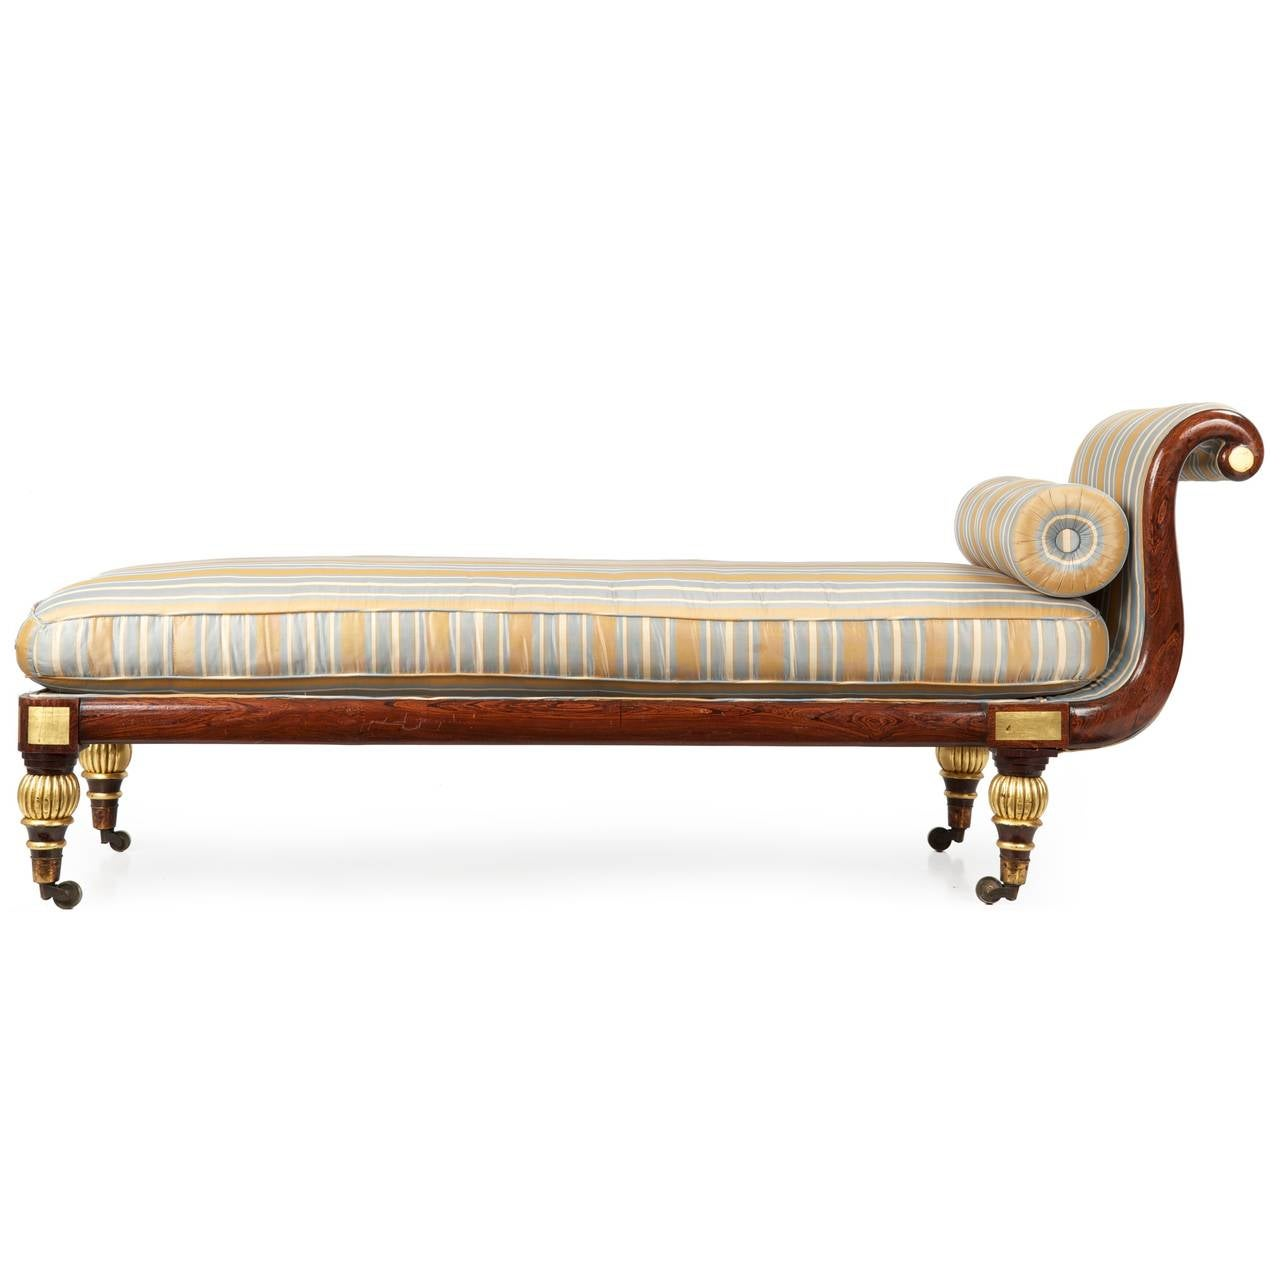 Regency faux rosewood antique recamier chaise lounge c for Antique chaise lounges